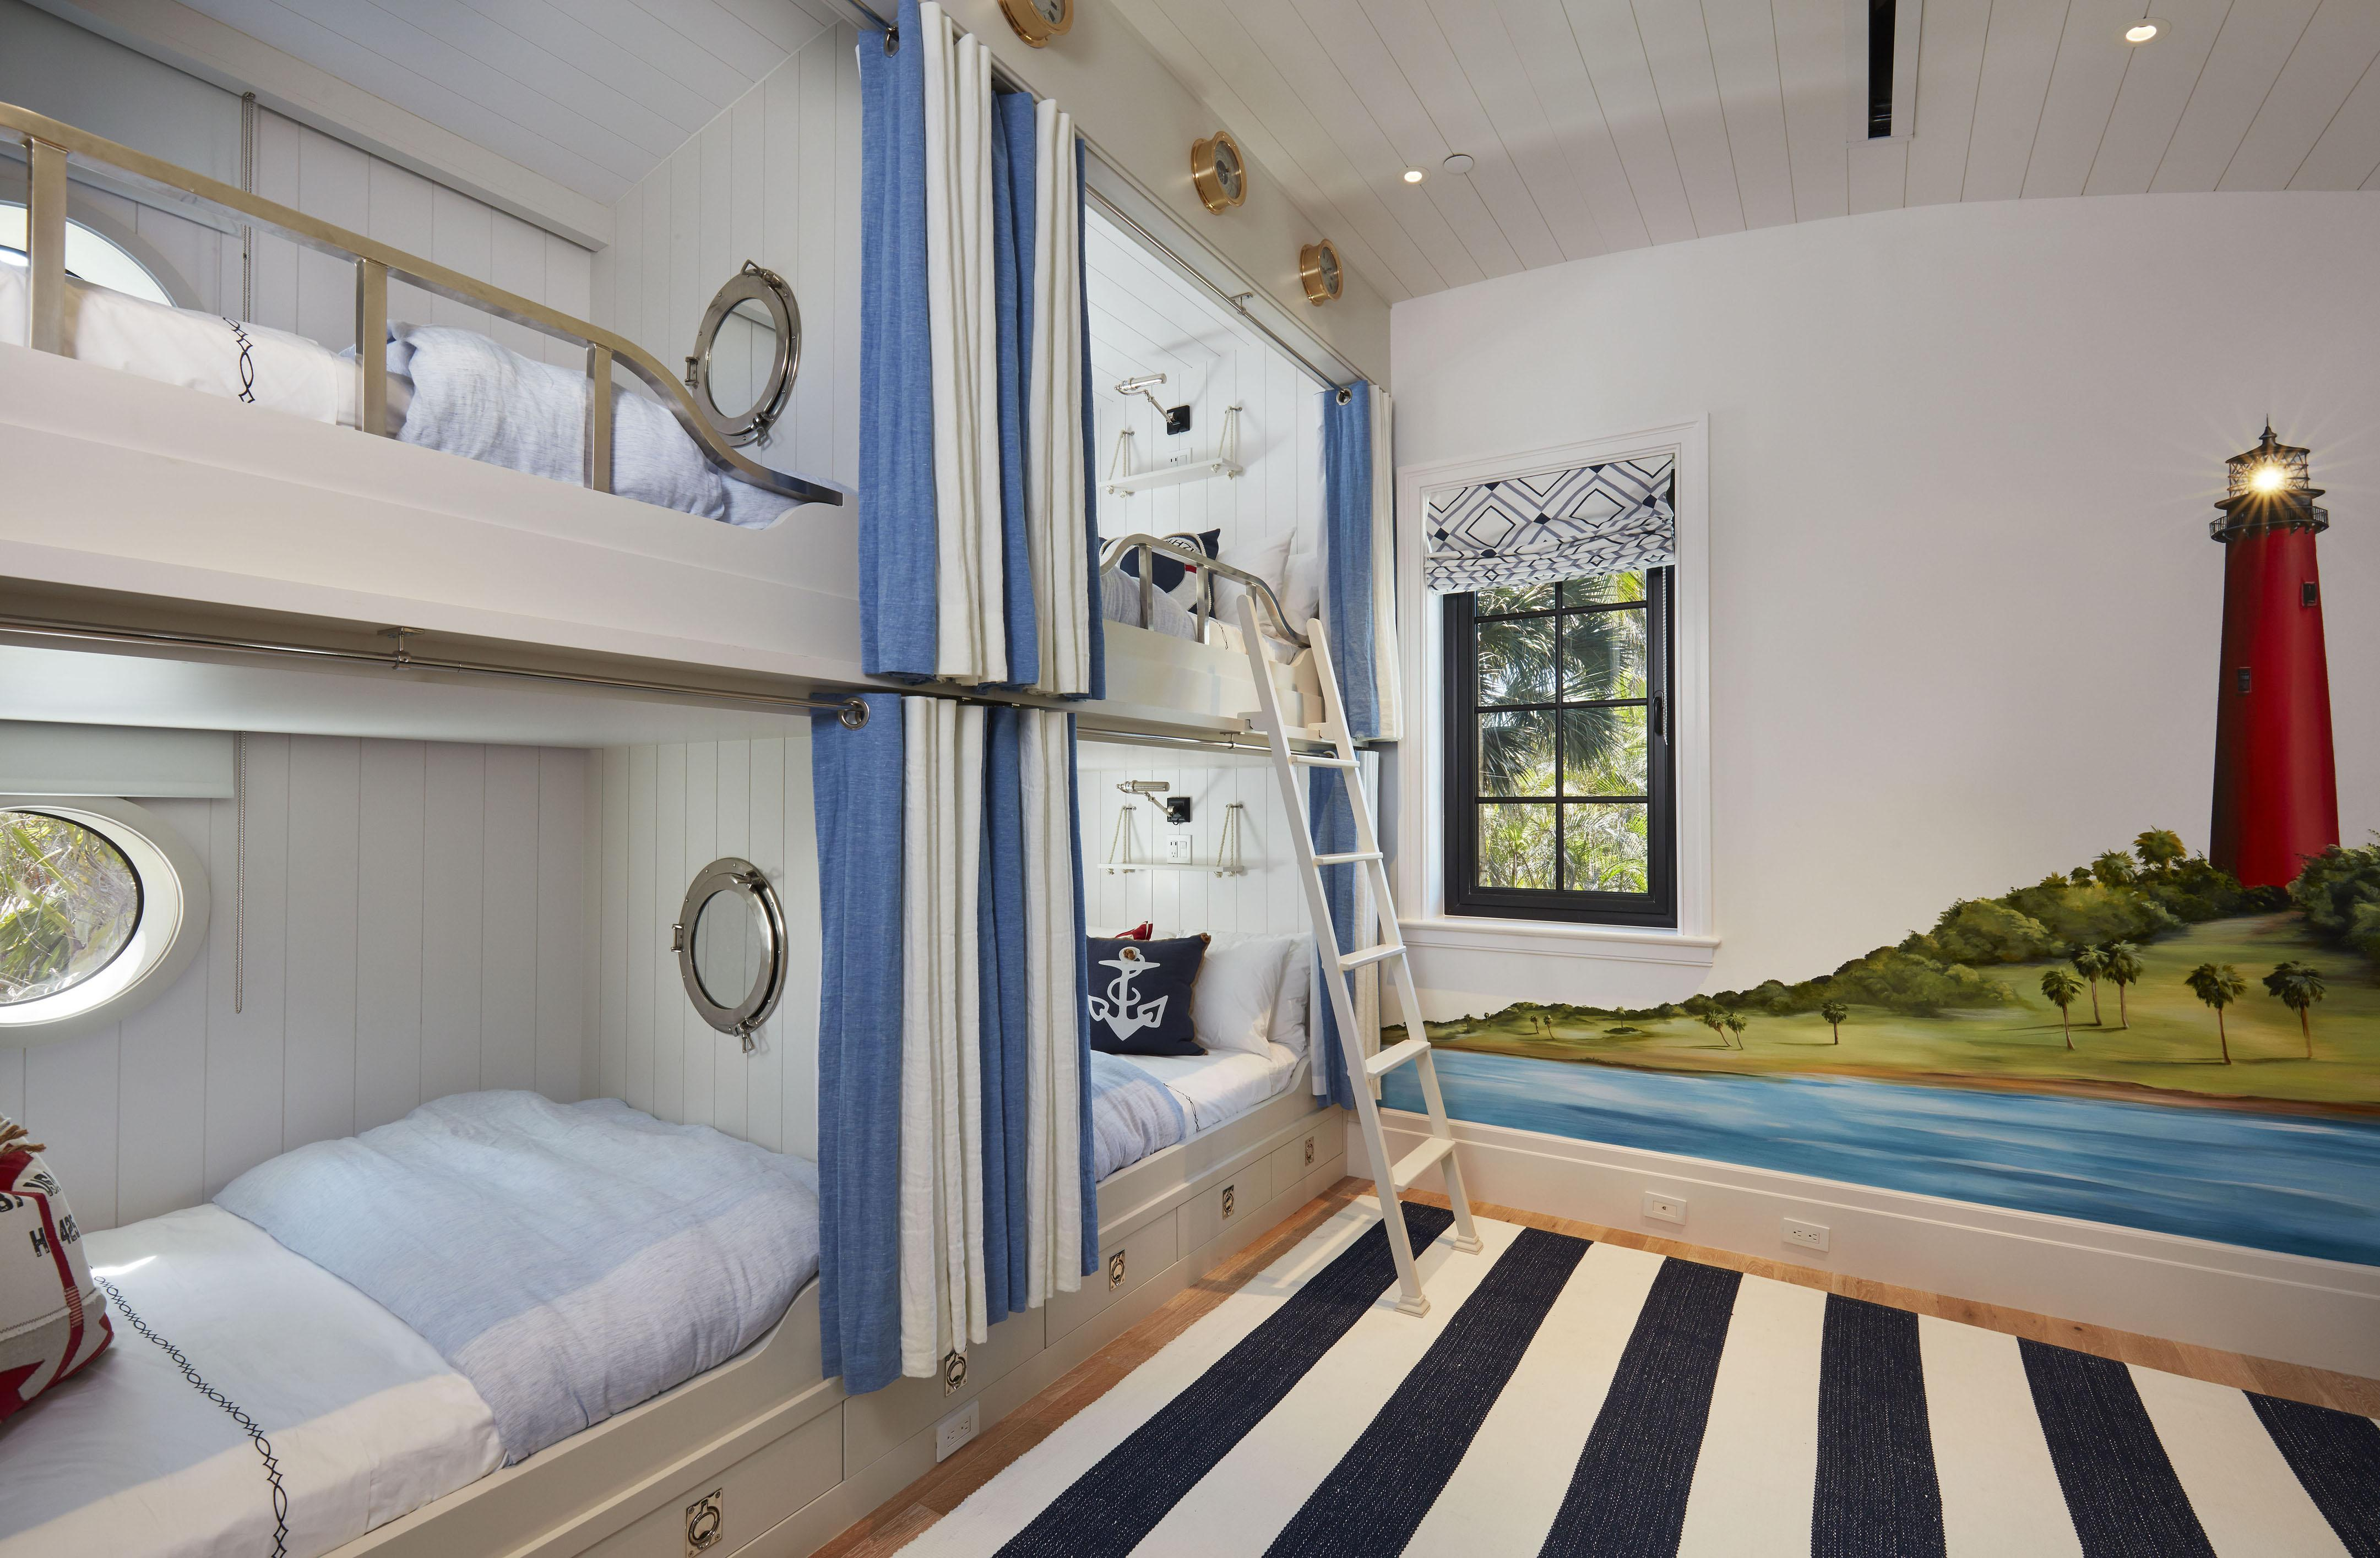 Two bunk beds are placed side-by-side in one bedroom with a lighthouse painting on the wall